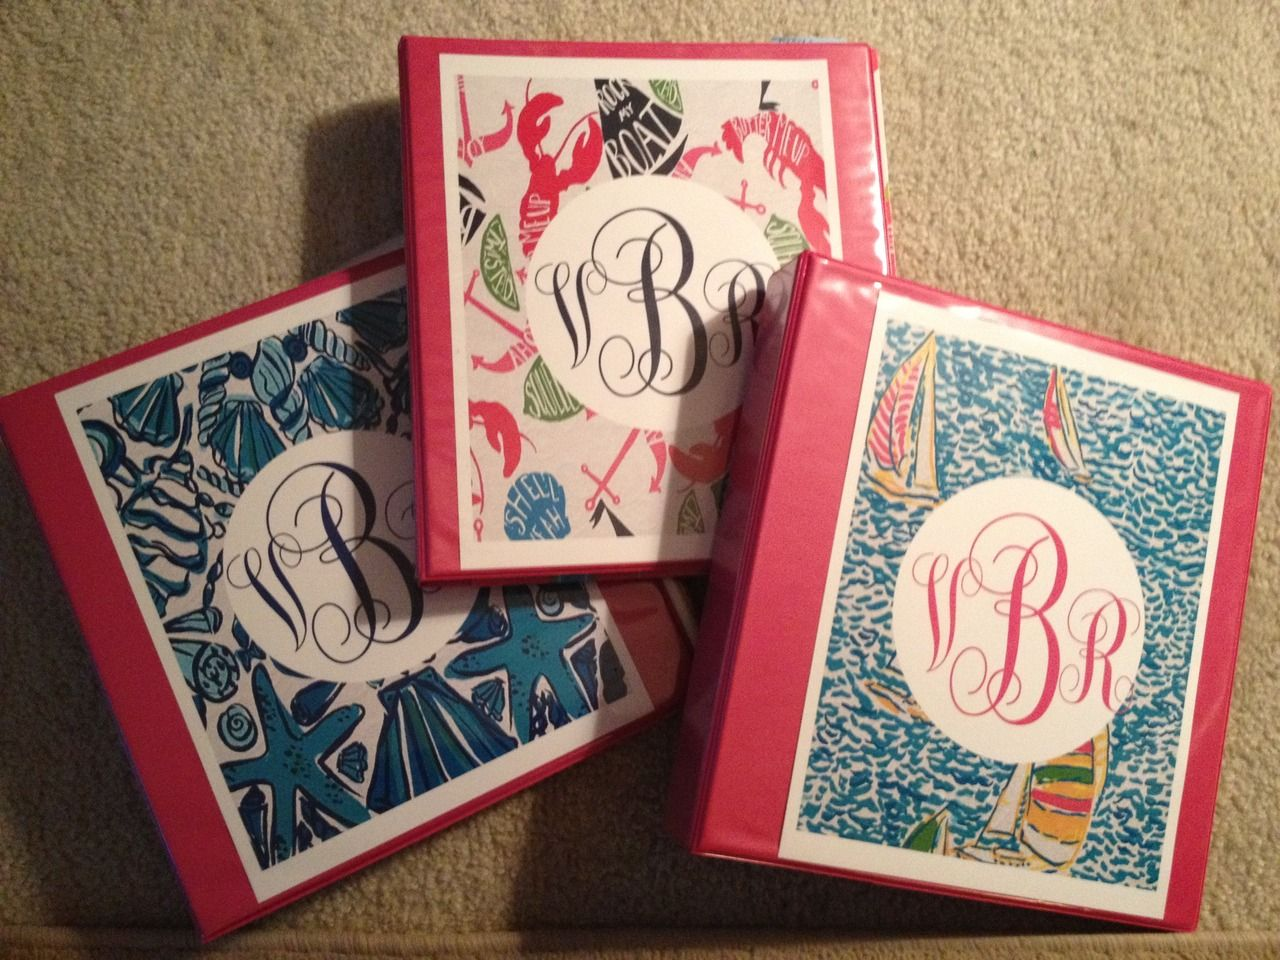 Superb Cute Ways To Decorate Binders By Using Your Loved Ones Initials.  Rho Gam  Binder Good Looking